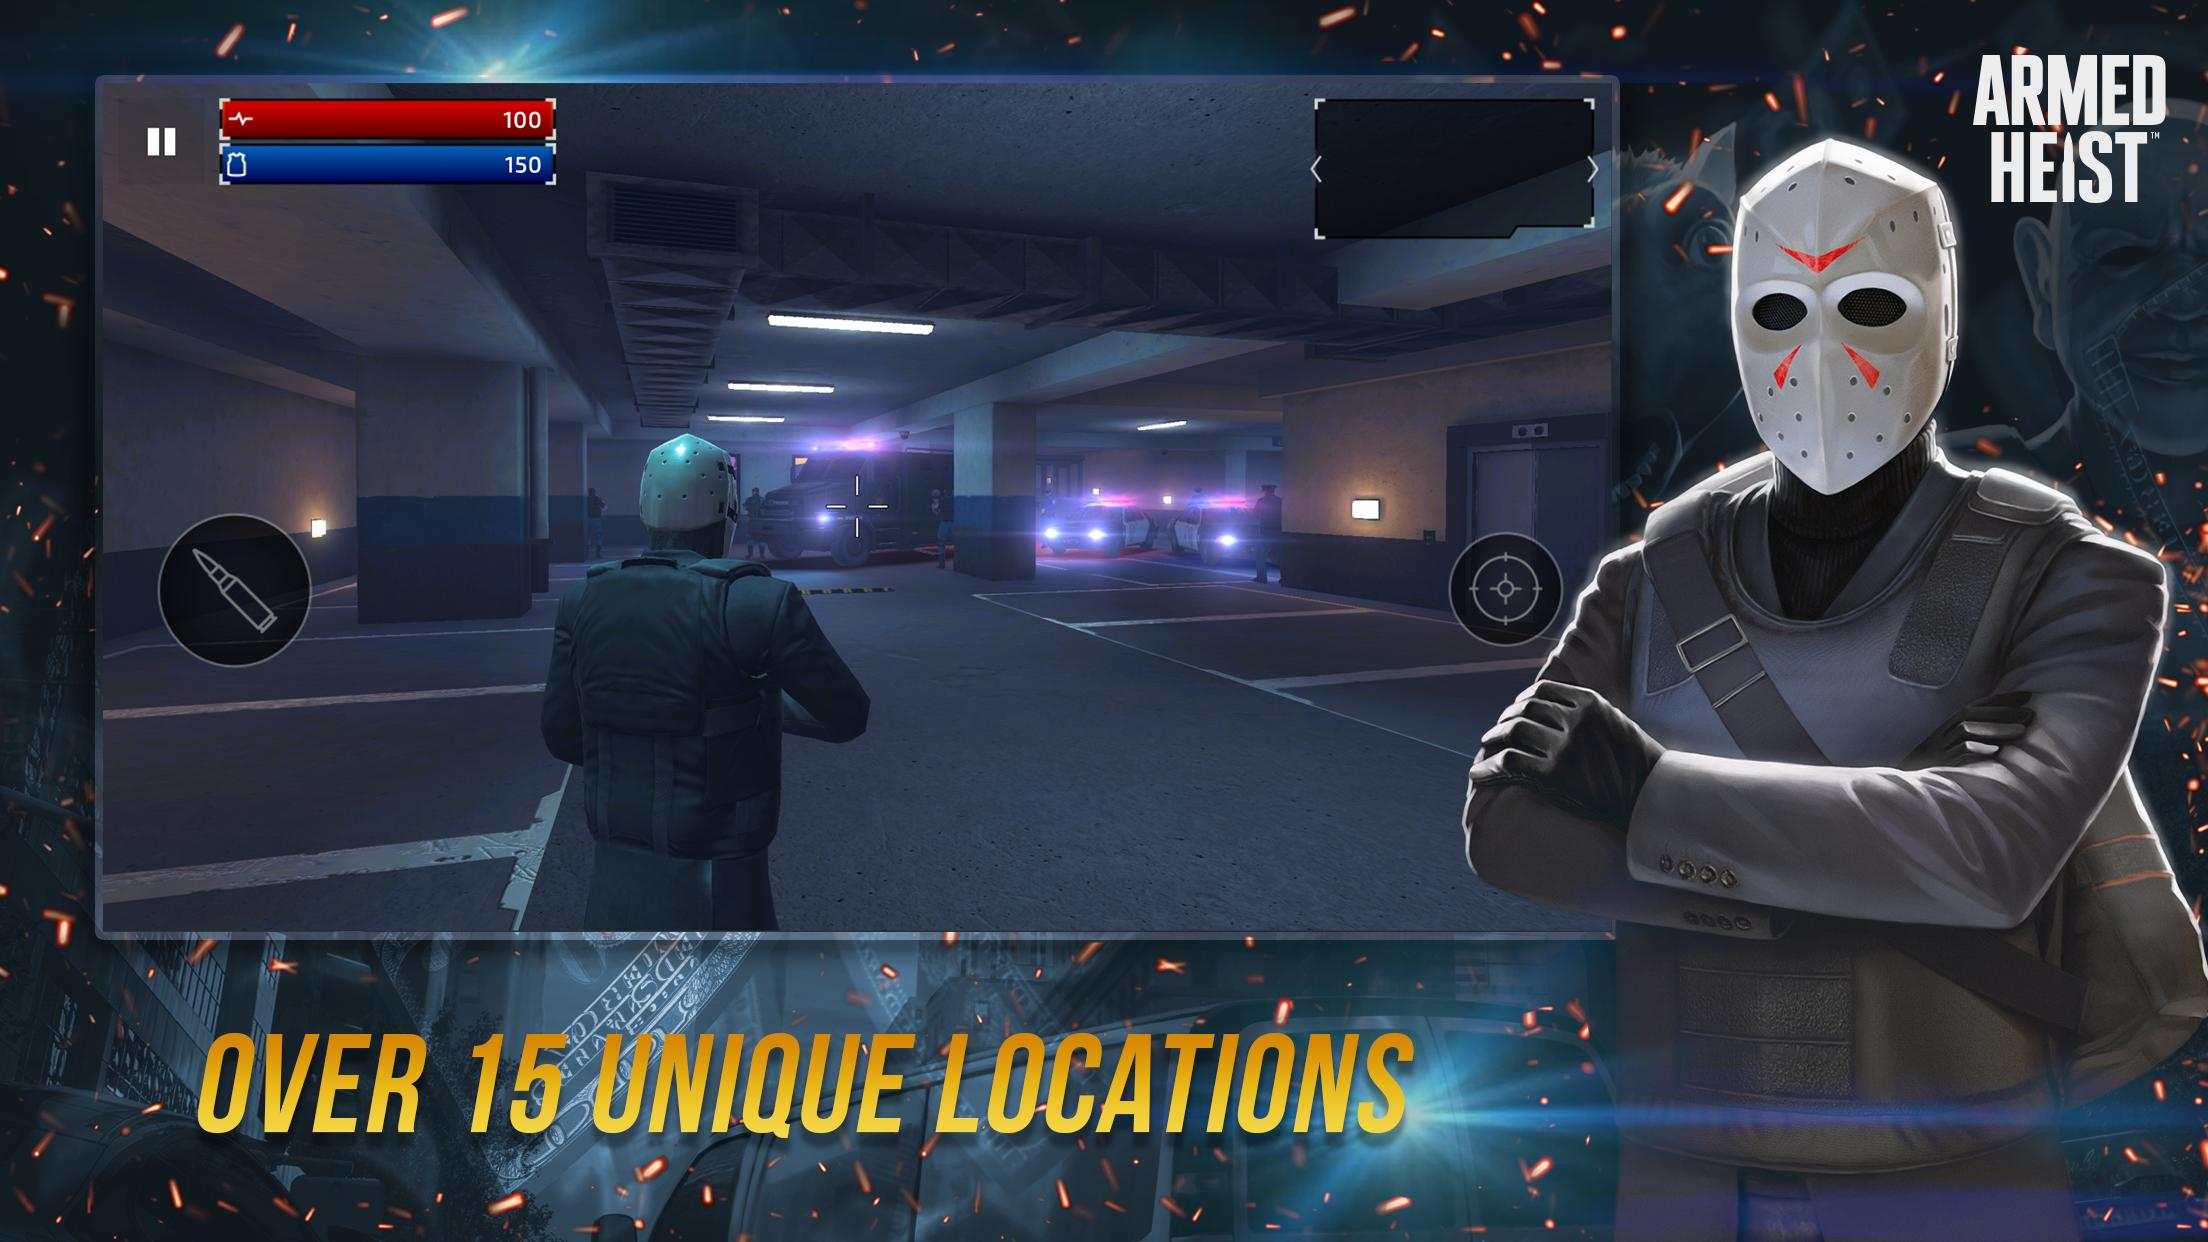 Armed Heist TPS 3D Sniper shooting gun games 2.1.1 Screenshot 5